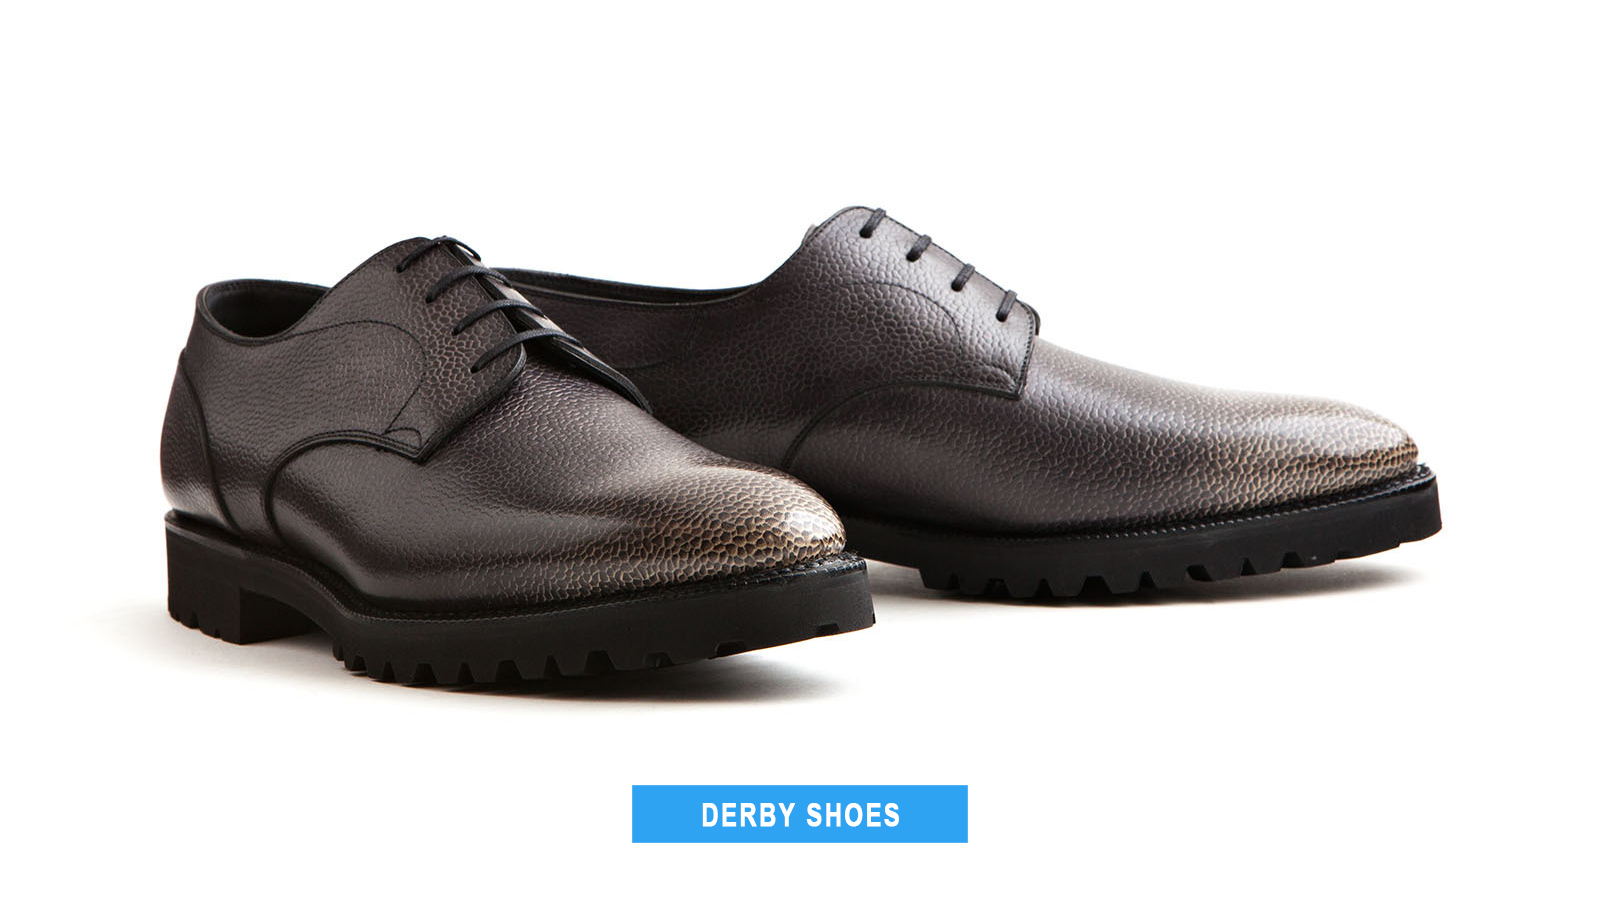 derby dress shoes style